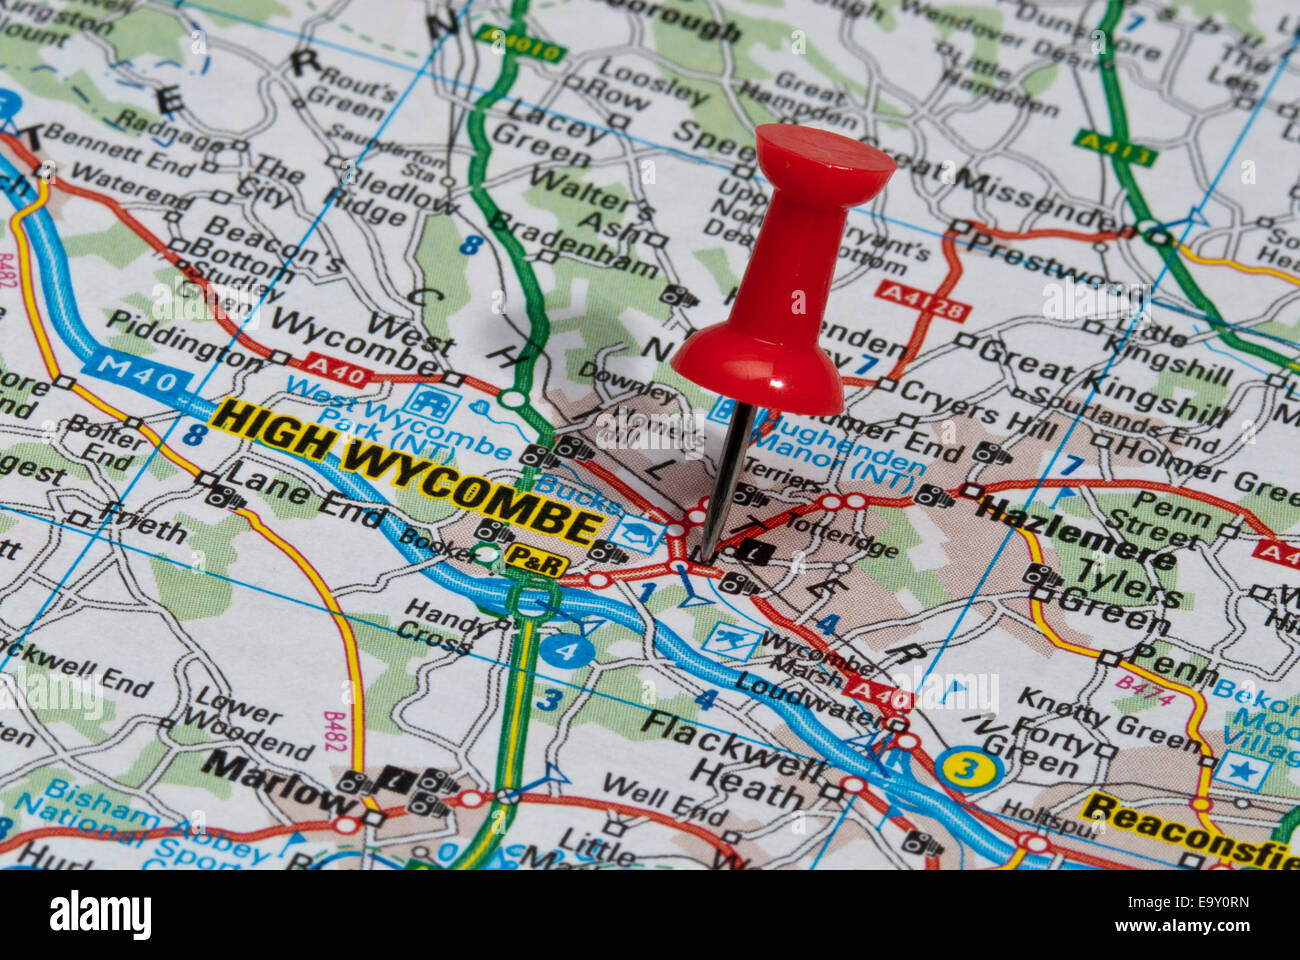 High Wycombe Map red map pin in road map pointing to city of High Wycombe Stock